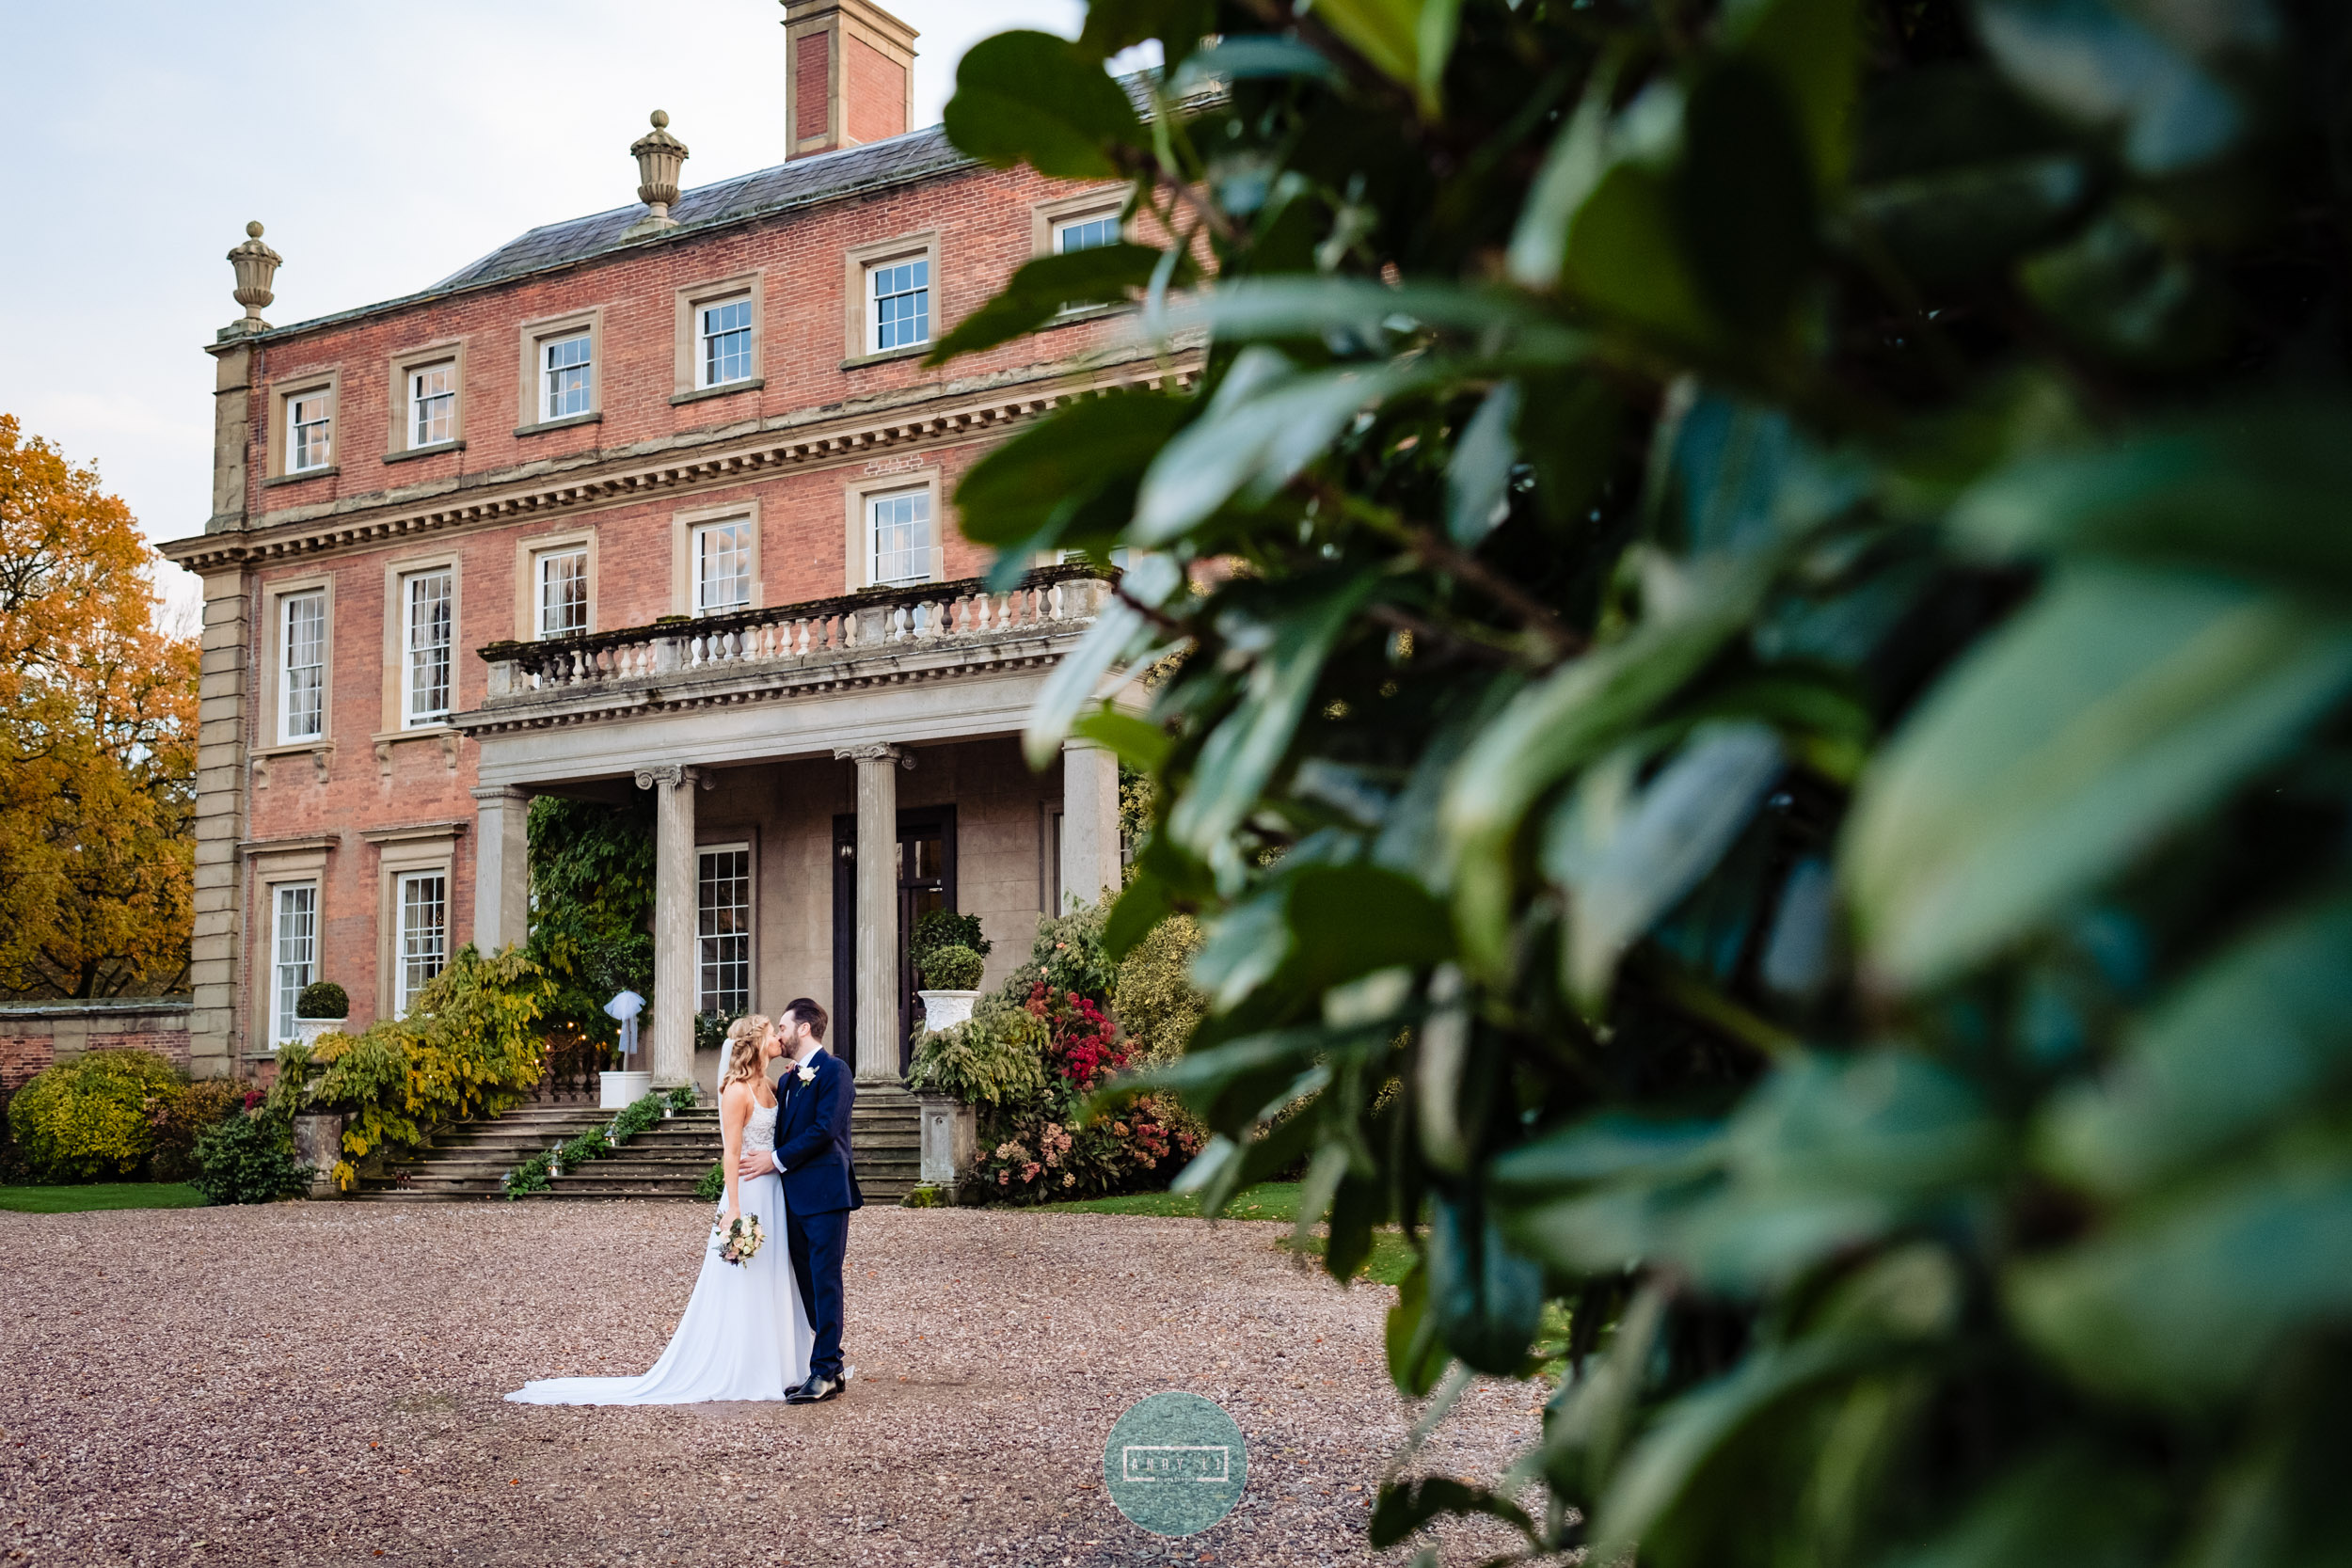 Davenport House Wedding Photographer-018-AXT23895.jpg